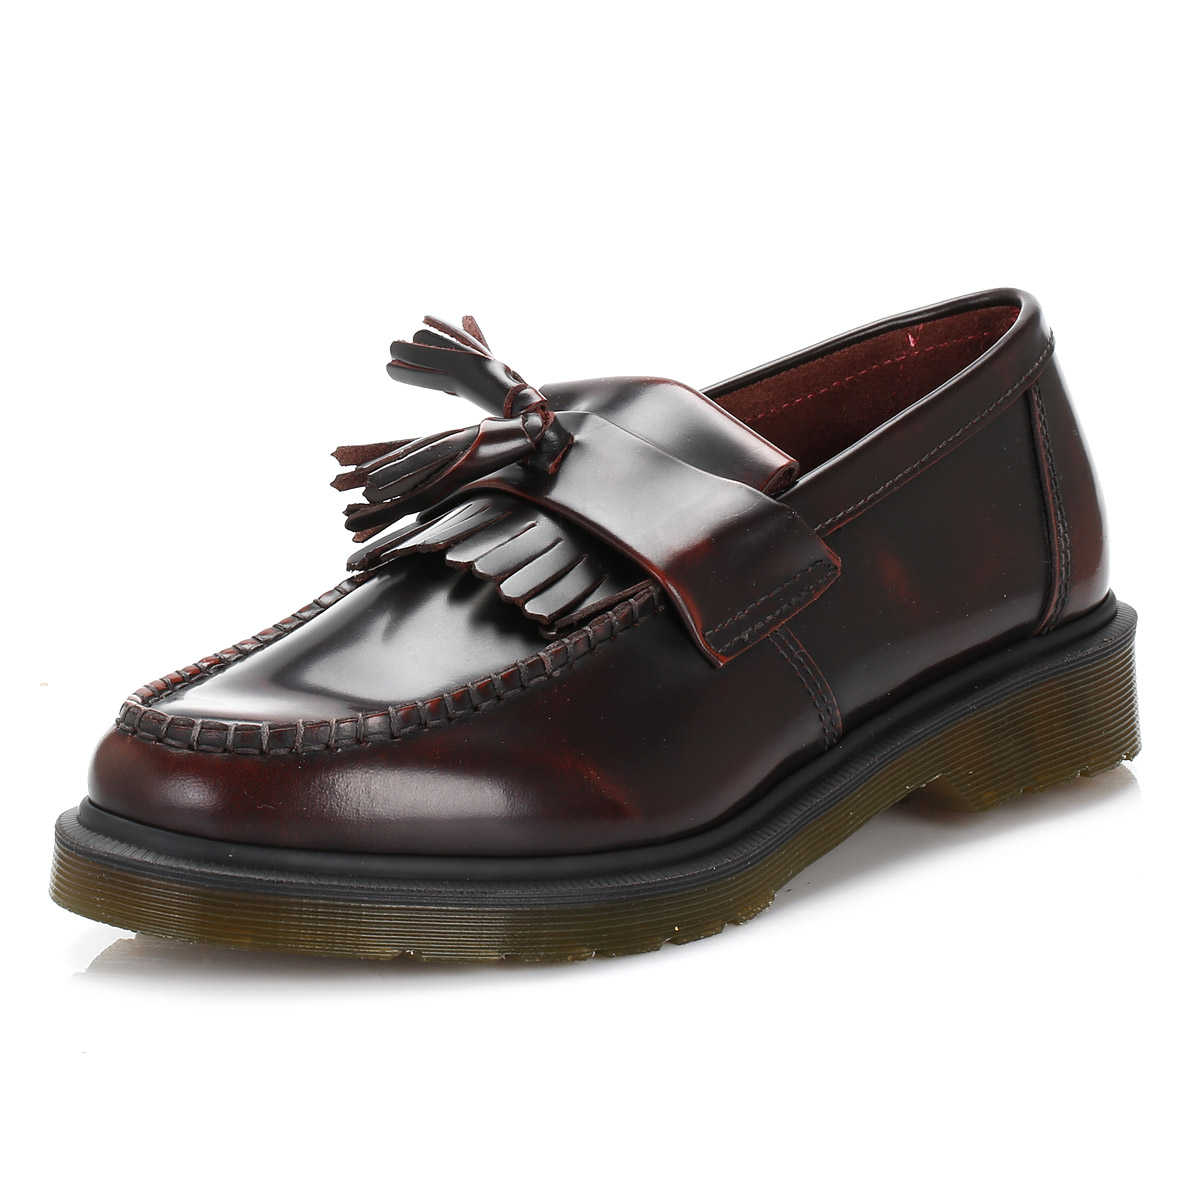 Dr. Adrian Martens  Uomo Docs Casual Schuhes Cherry ROT Adrian Dr. Leder Loafers LaceUp Boat 3923a5